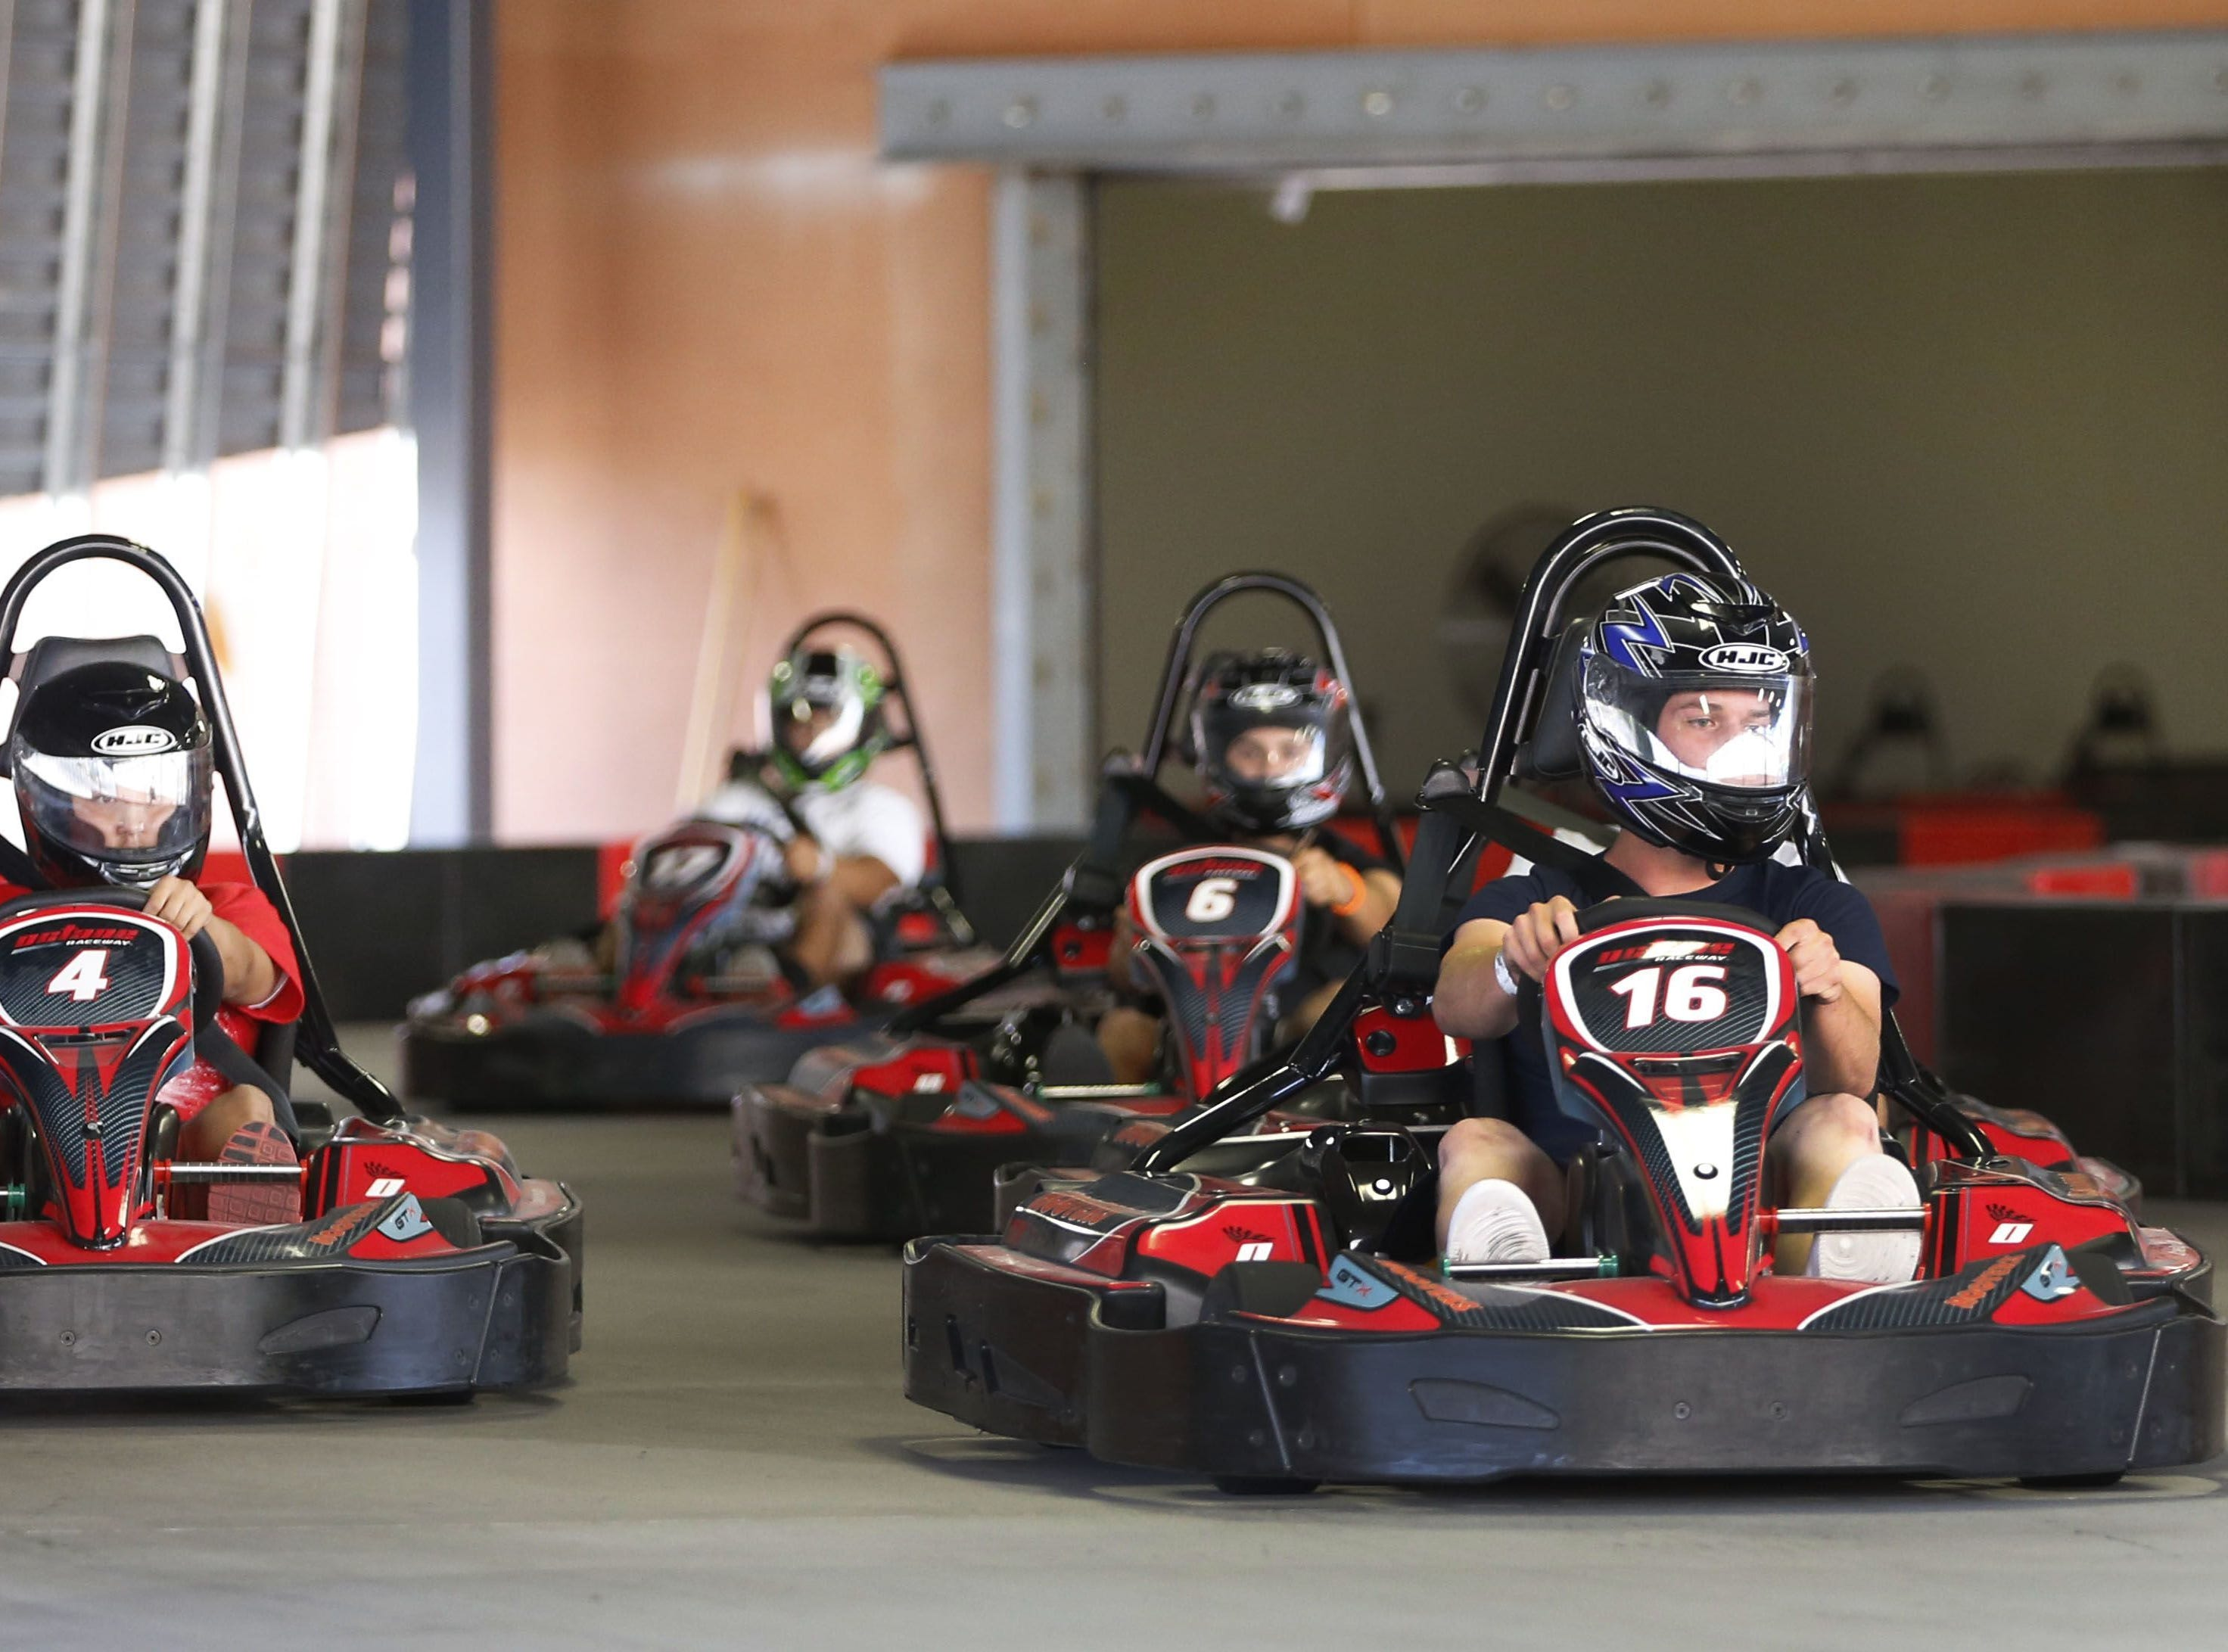 Octane Raceway | Nov. 11, get half-off all appetizers and $10 off a Velocity VR session. | Details: 9119 E. Talking Stick Way, Scottsdale. 602-302-7223, octaneraceway.com.